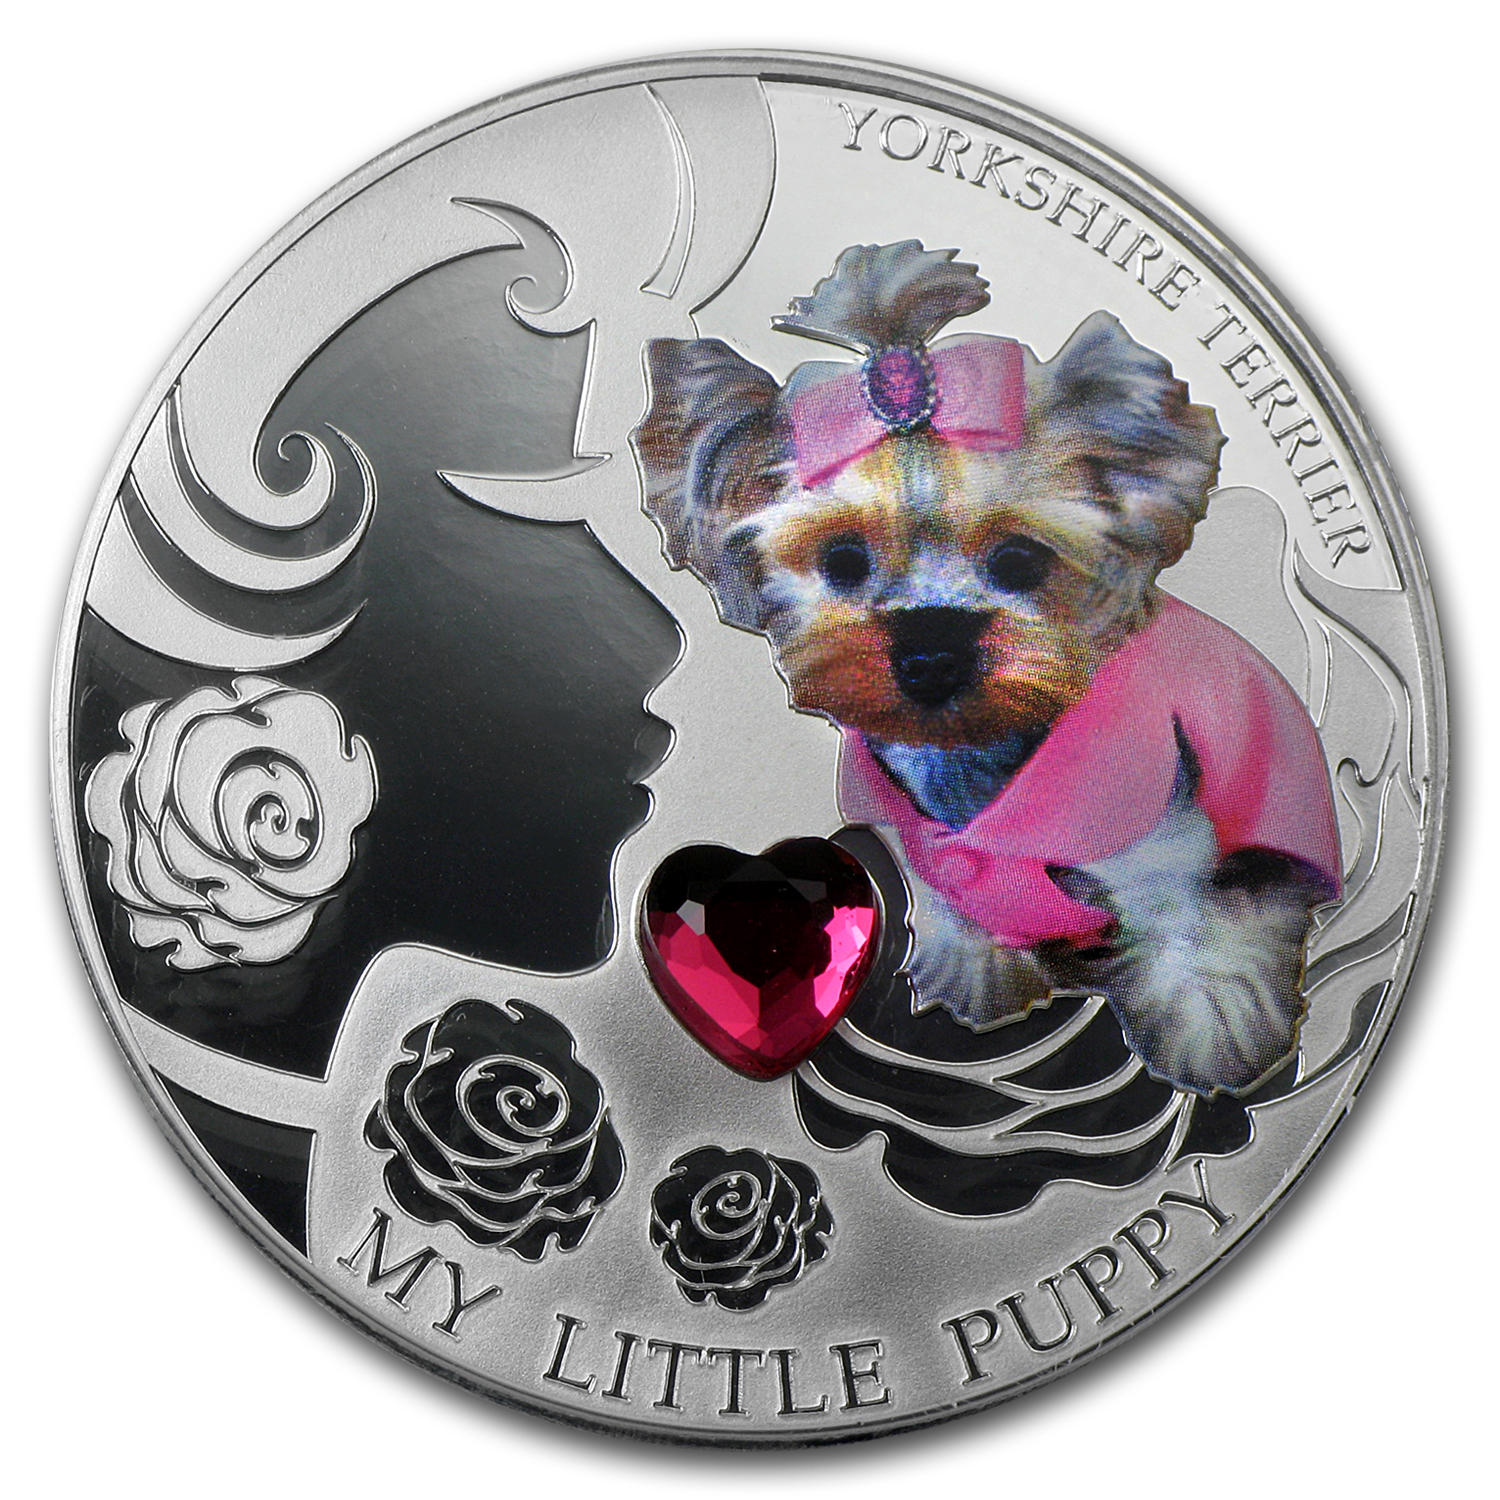 2013 Fiji Silver Dogs & Cats Series My Little Puppy Yorkshire